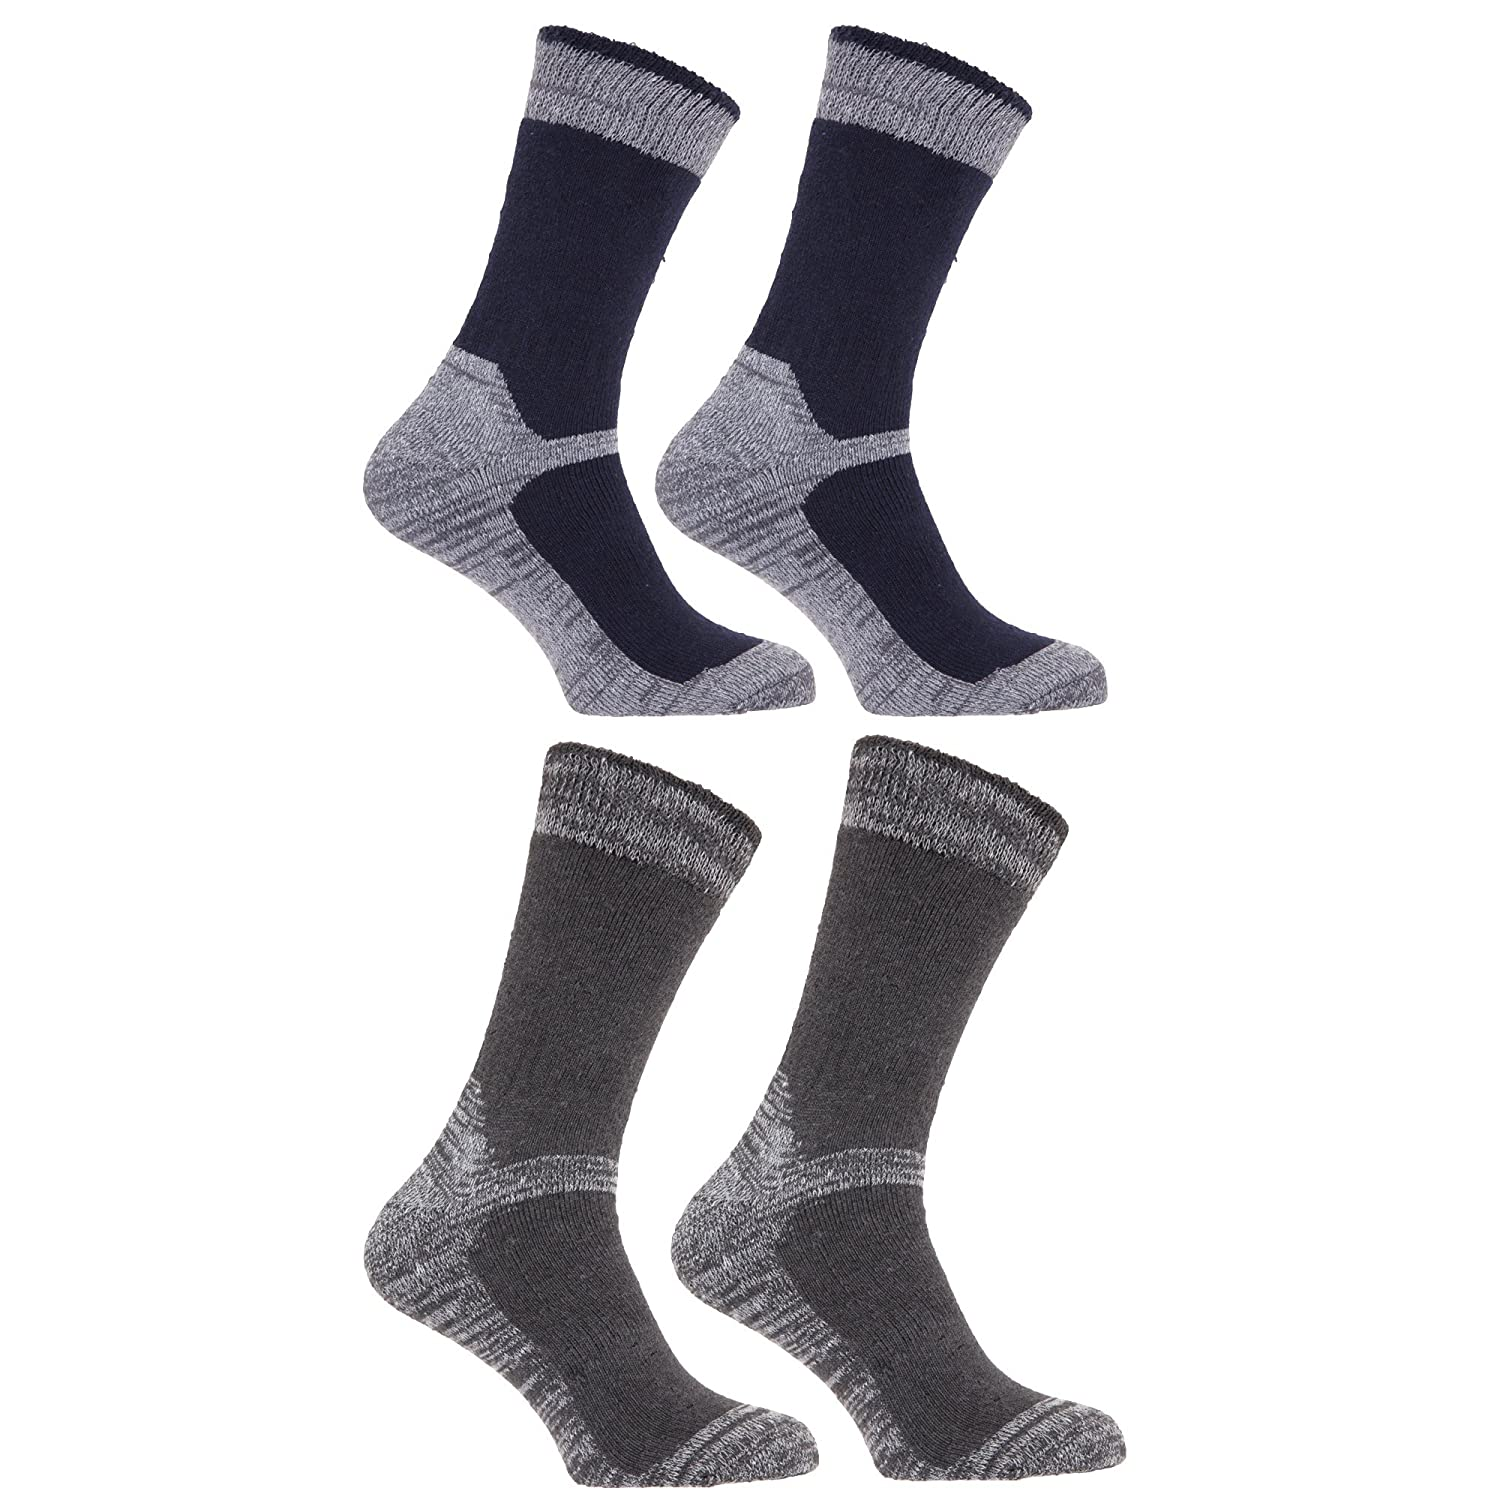 Mens Heavy Weight Reinforced Toe Work Boot Socks (Pack Of 4) (US Shoe 7-13) (Black/Grey) at Amazon Mens Clothing store: Casual Socks